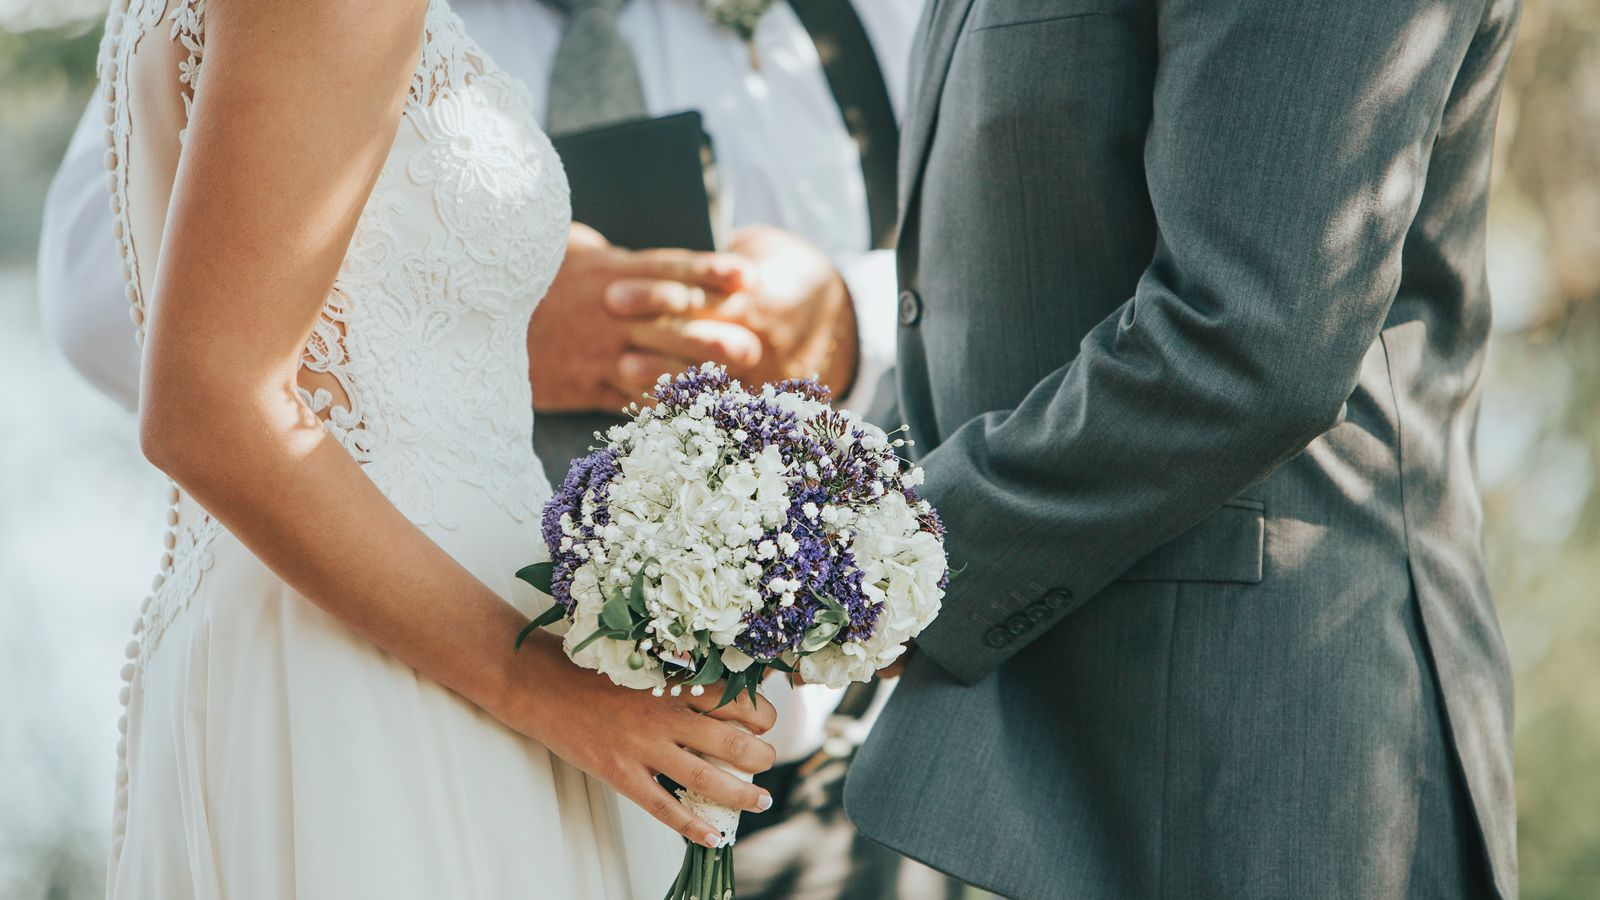 Church of England Says Weddings Should be Limited to Two Guests to Prevent Spread of Coronavirus Plague